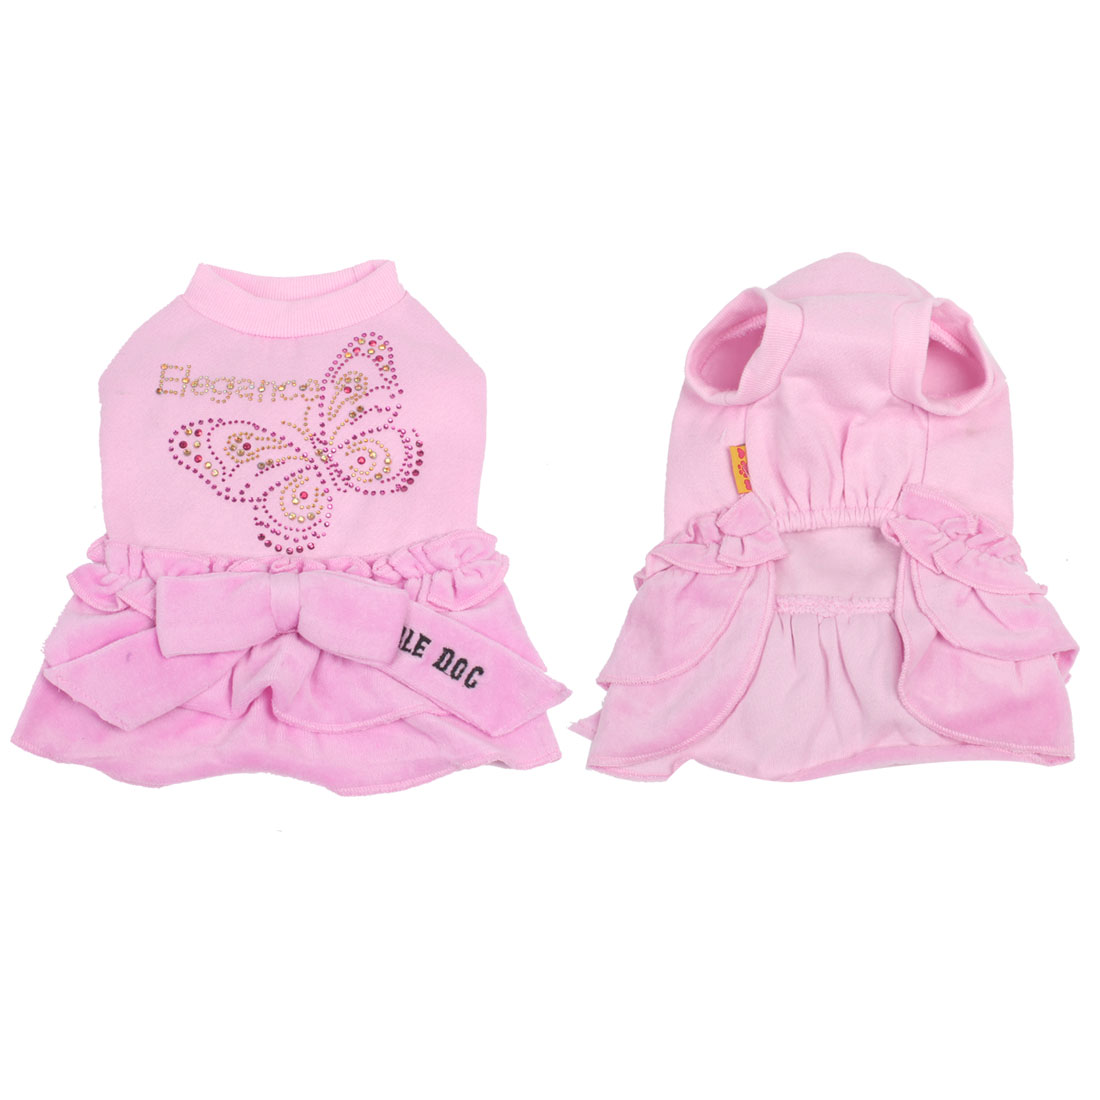 Winter Spring Yorkie Pet Dog Dress Clothing Clothes Apparel Pink M